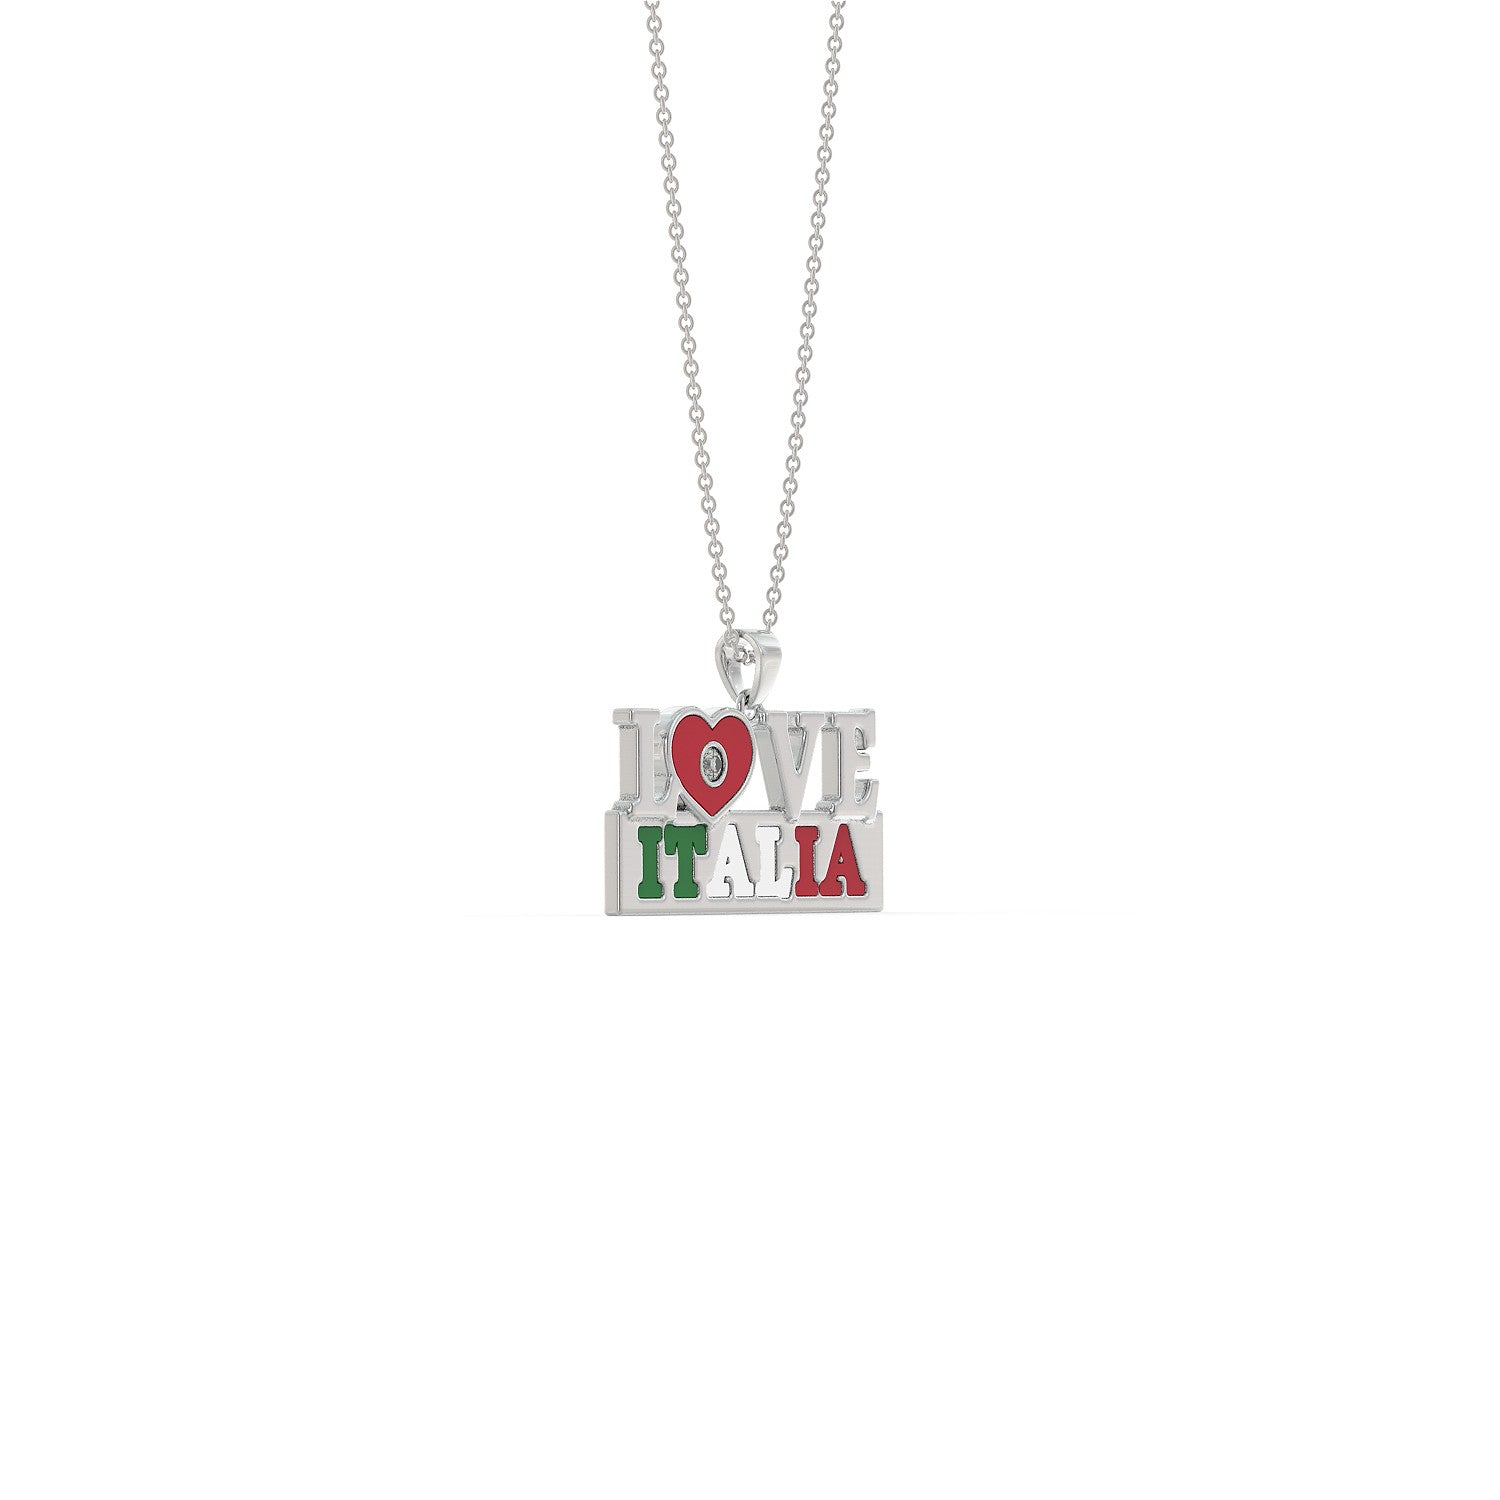 Love Italy Necklace